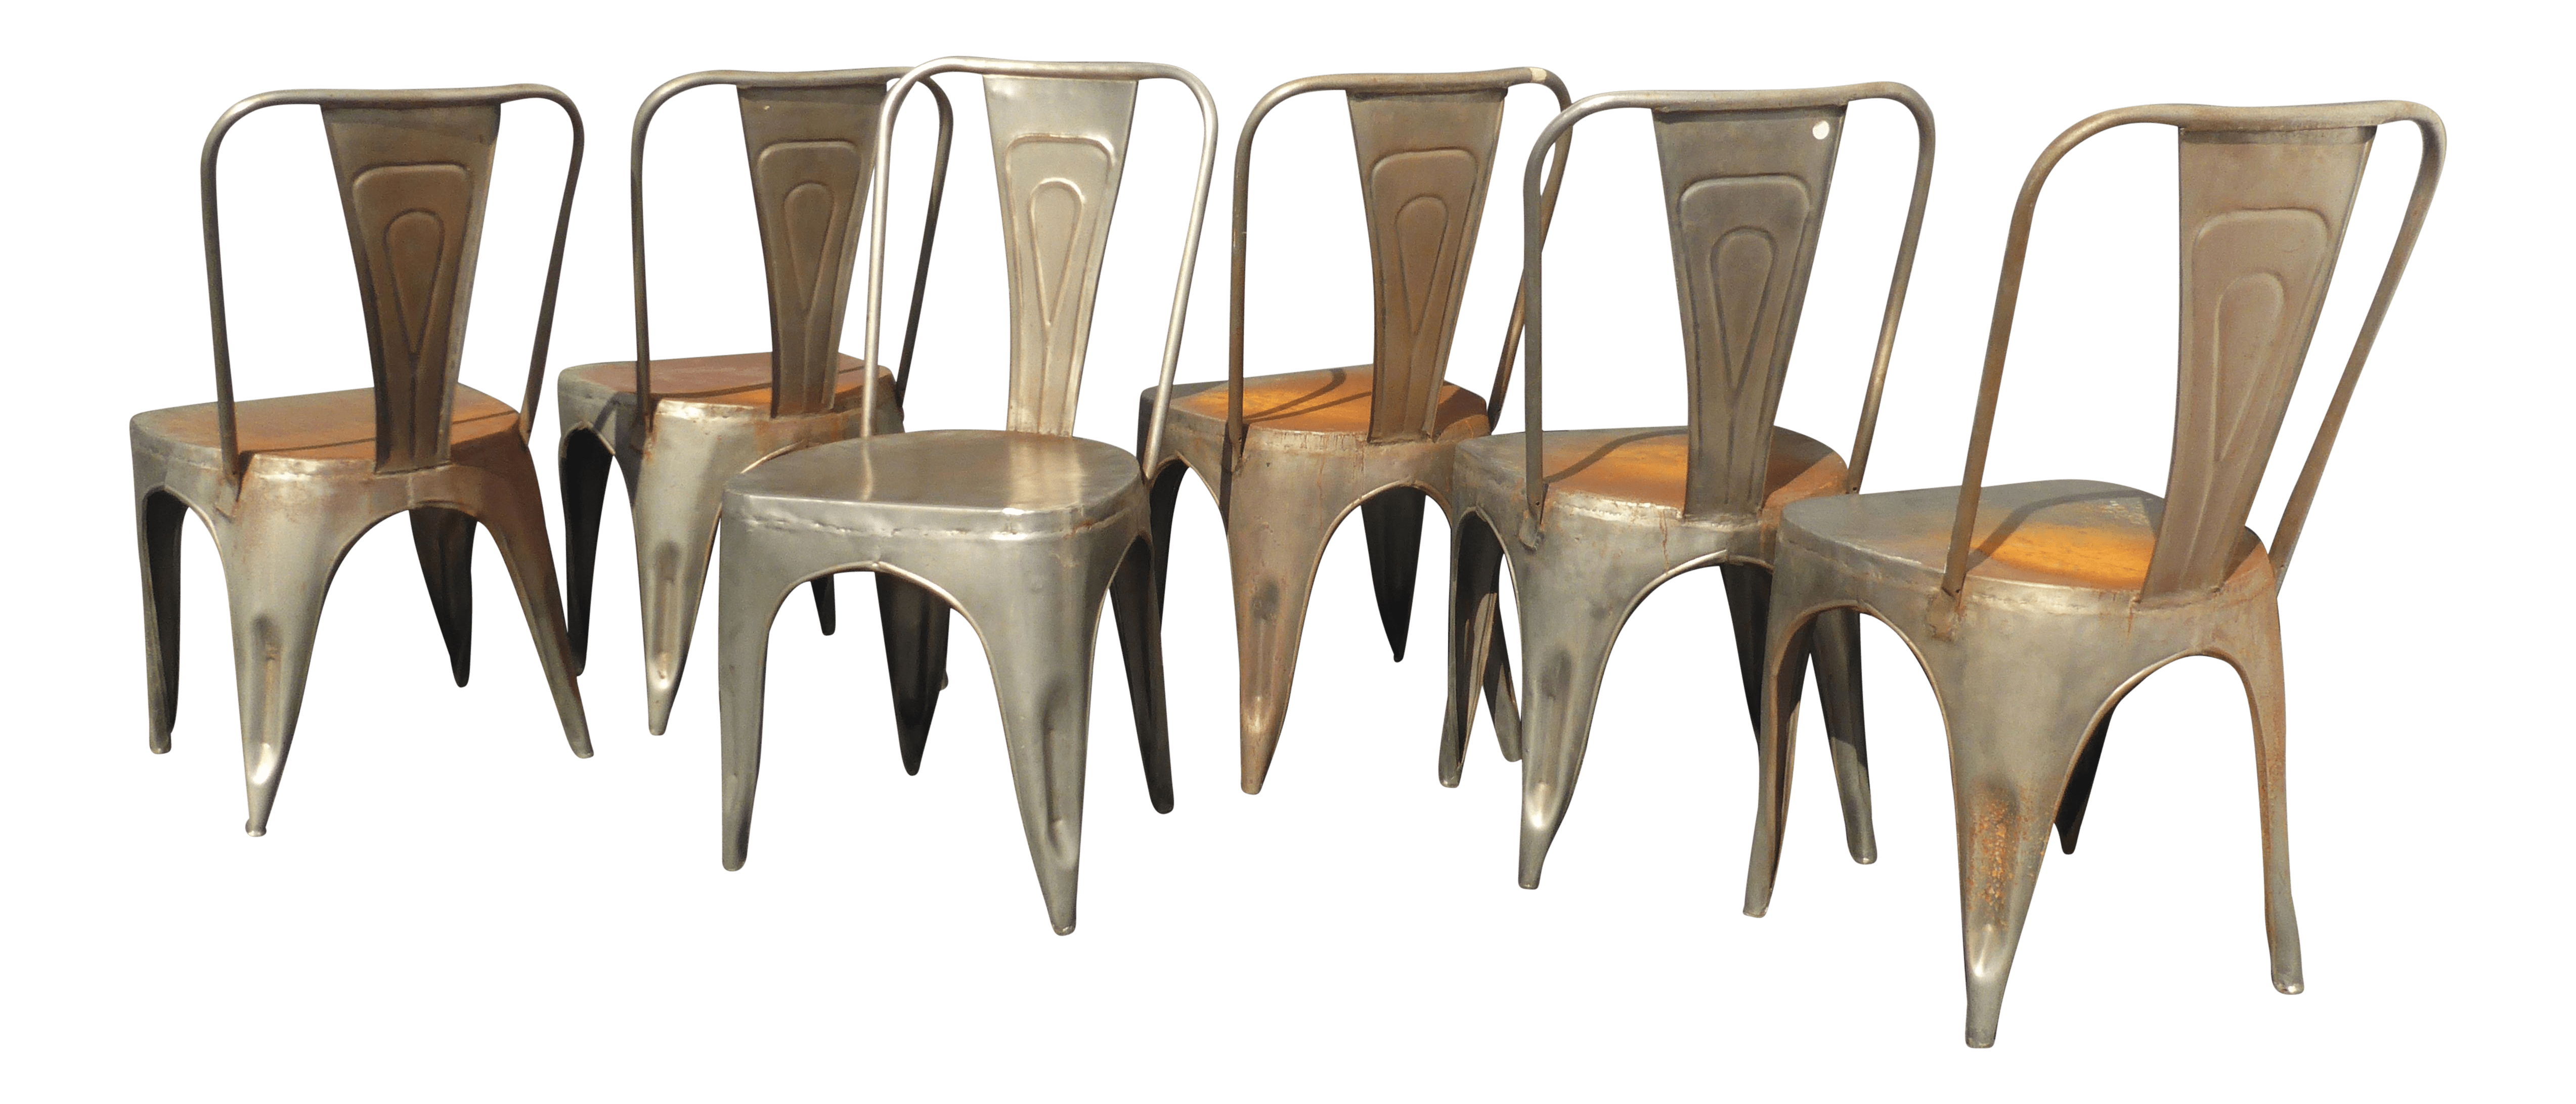 rustic metal dining chairs big man zero gravity chair vintage industrial style set